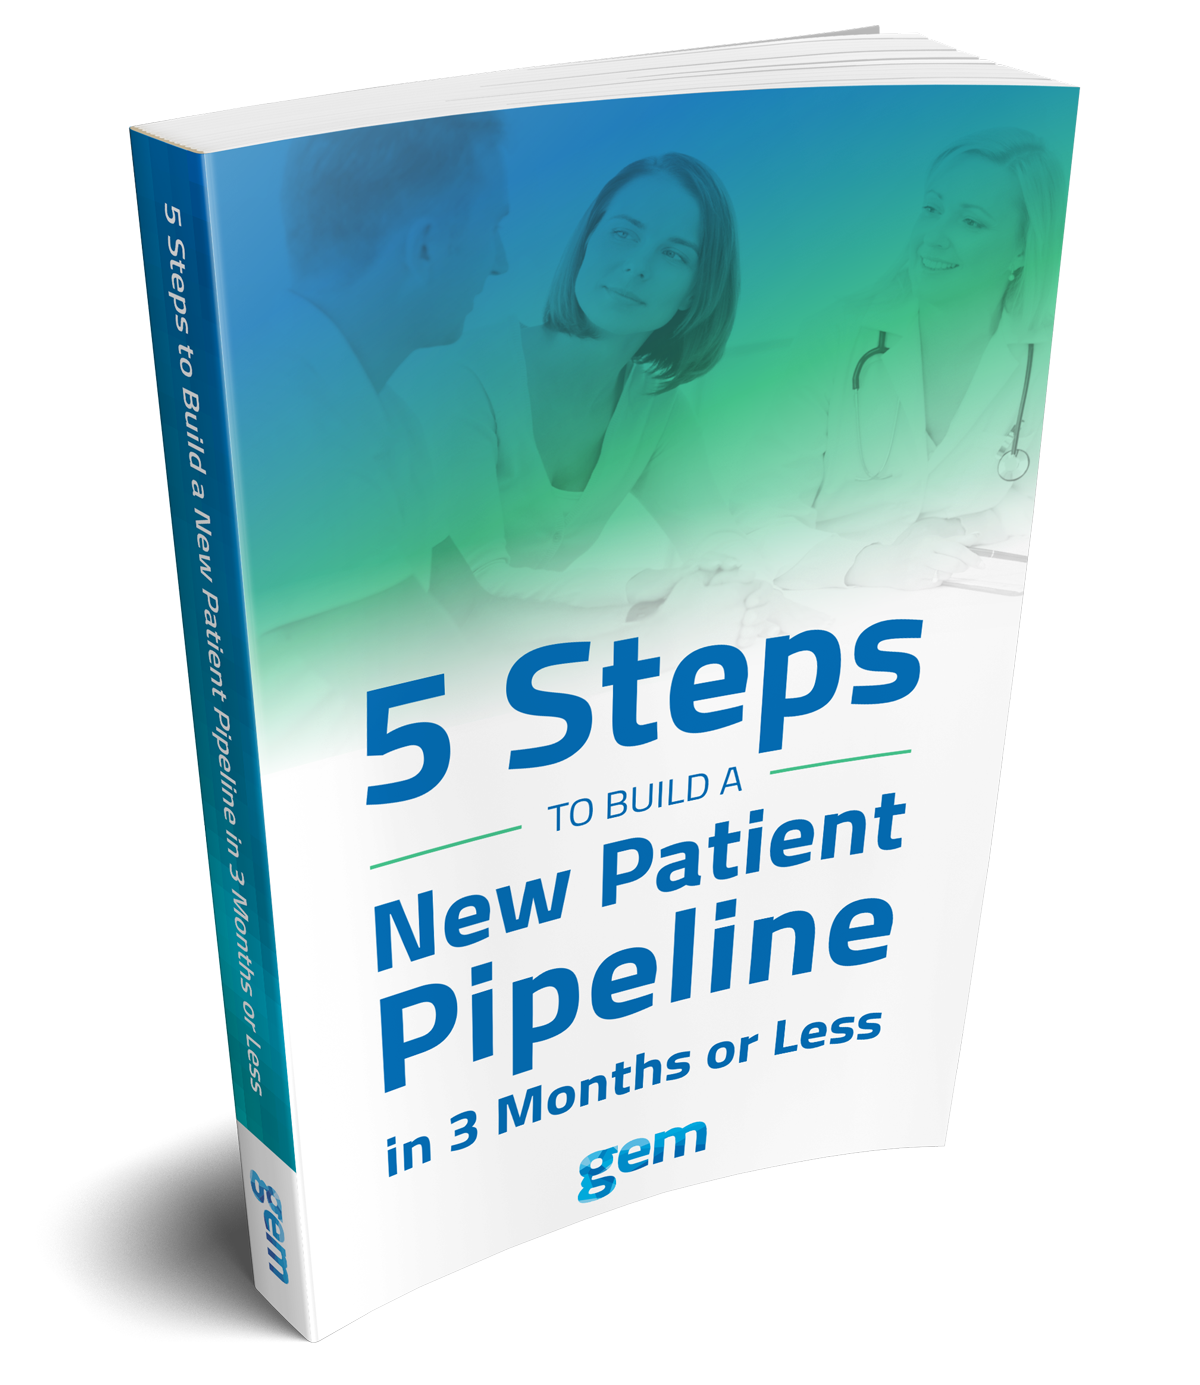 5 Steps to Build a New Patient Pipeline in 3 Months or Less